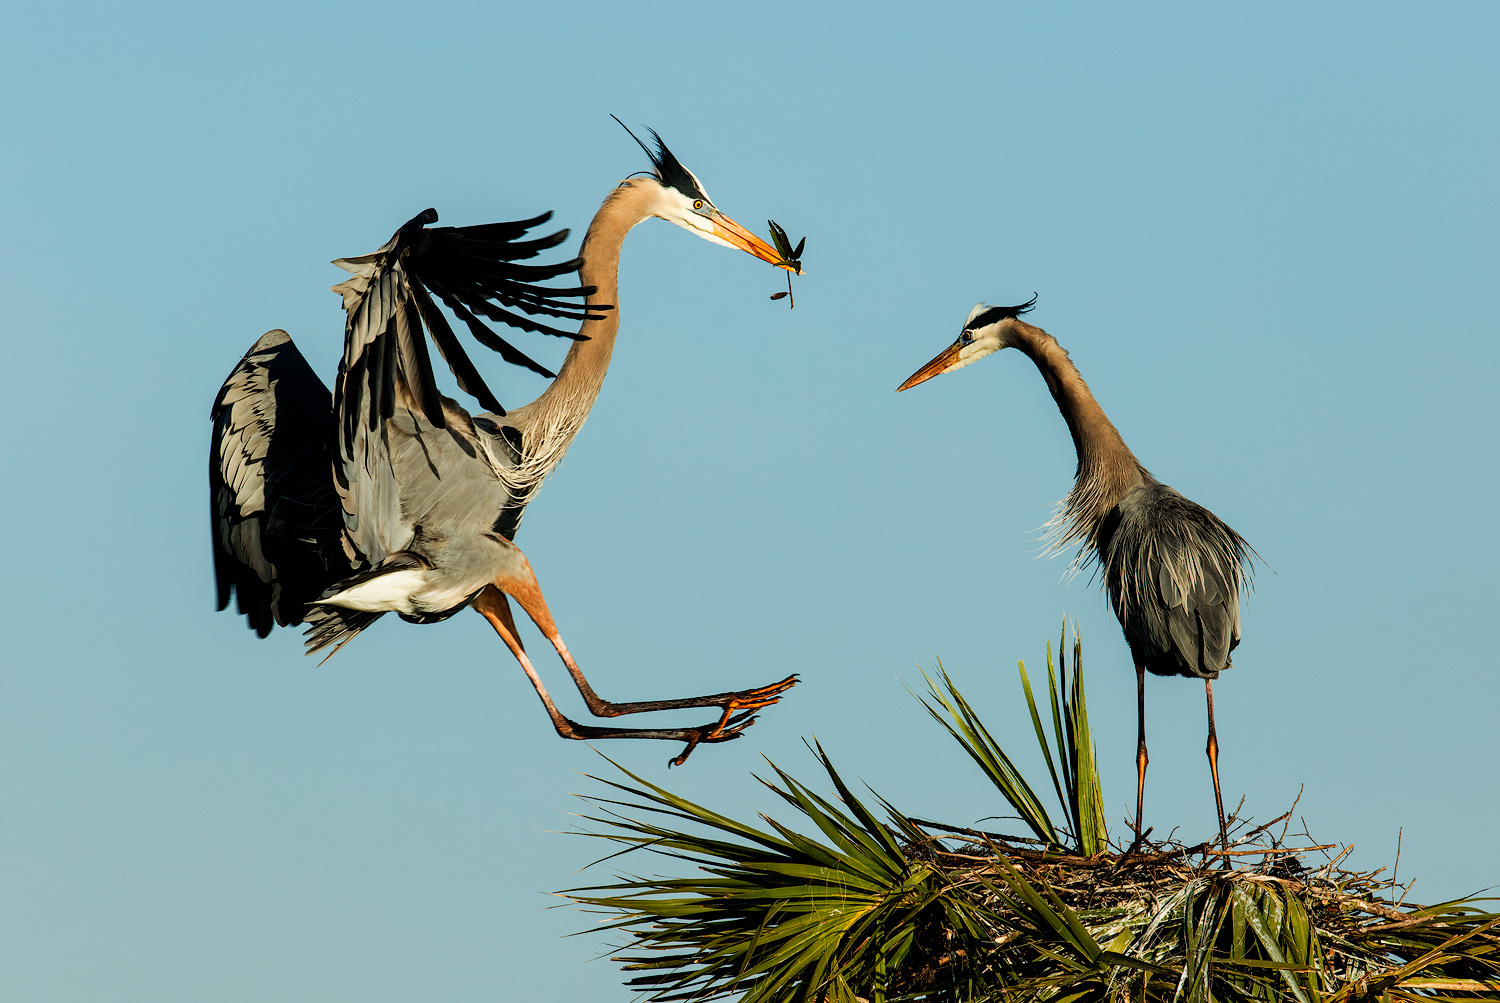 Great Blue Herons nest building at Viera Wetlands. This is one of the best places to photograph these beautiful birds in Central Florida.